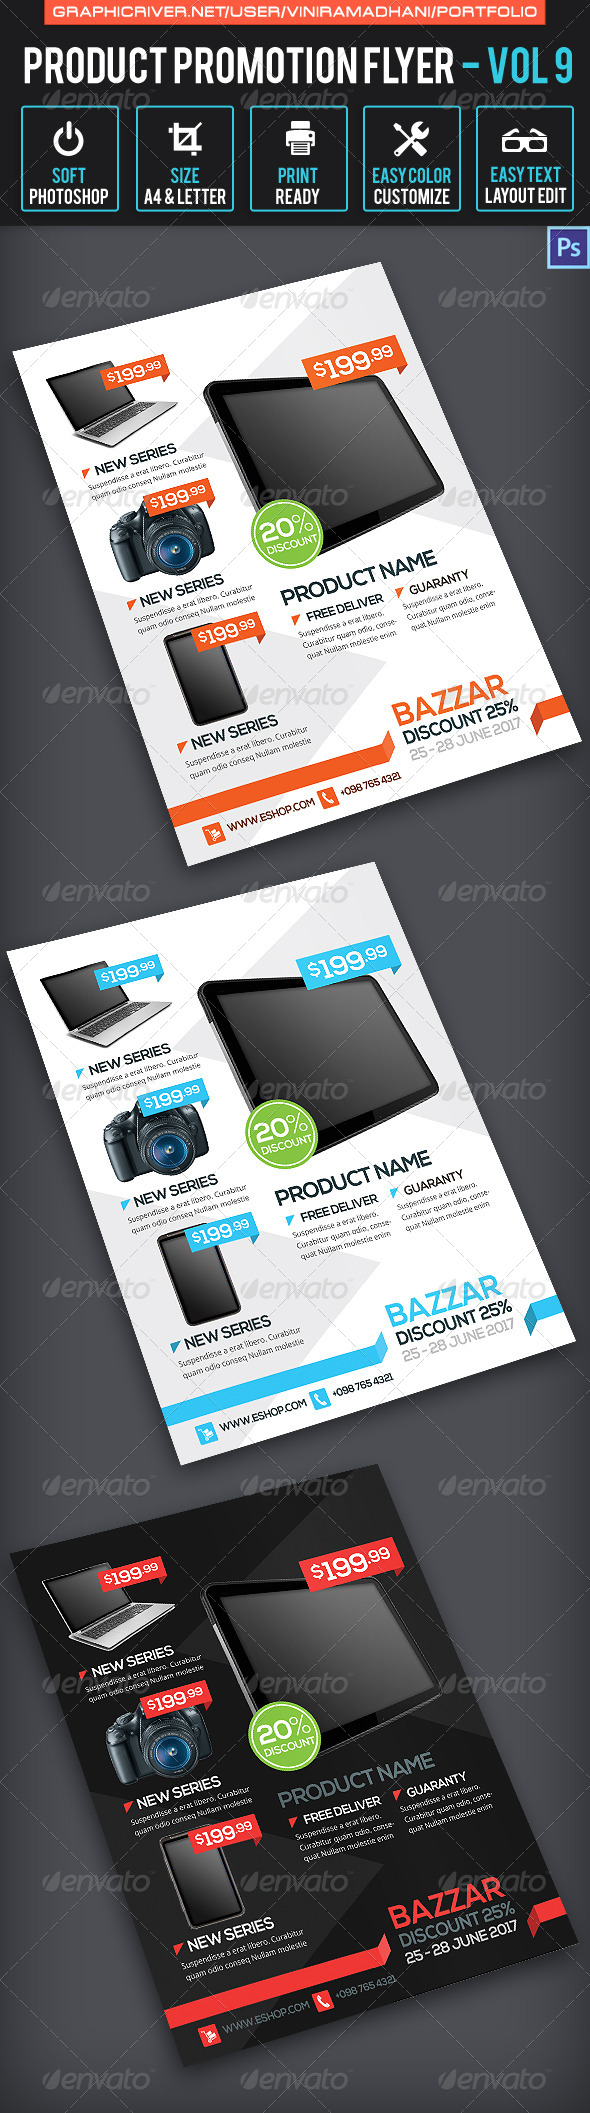 Product Promotion Flyer Volume 9 - Commerce Flyers